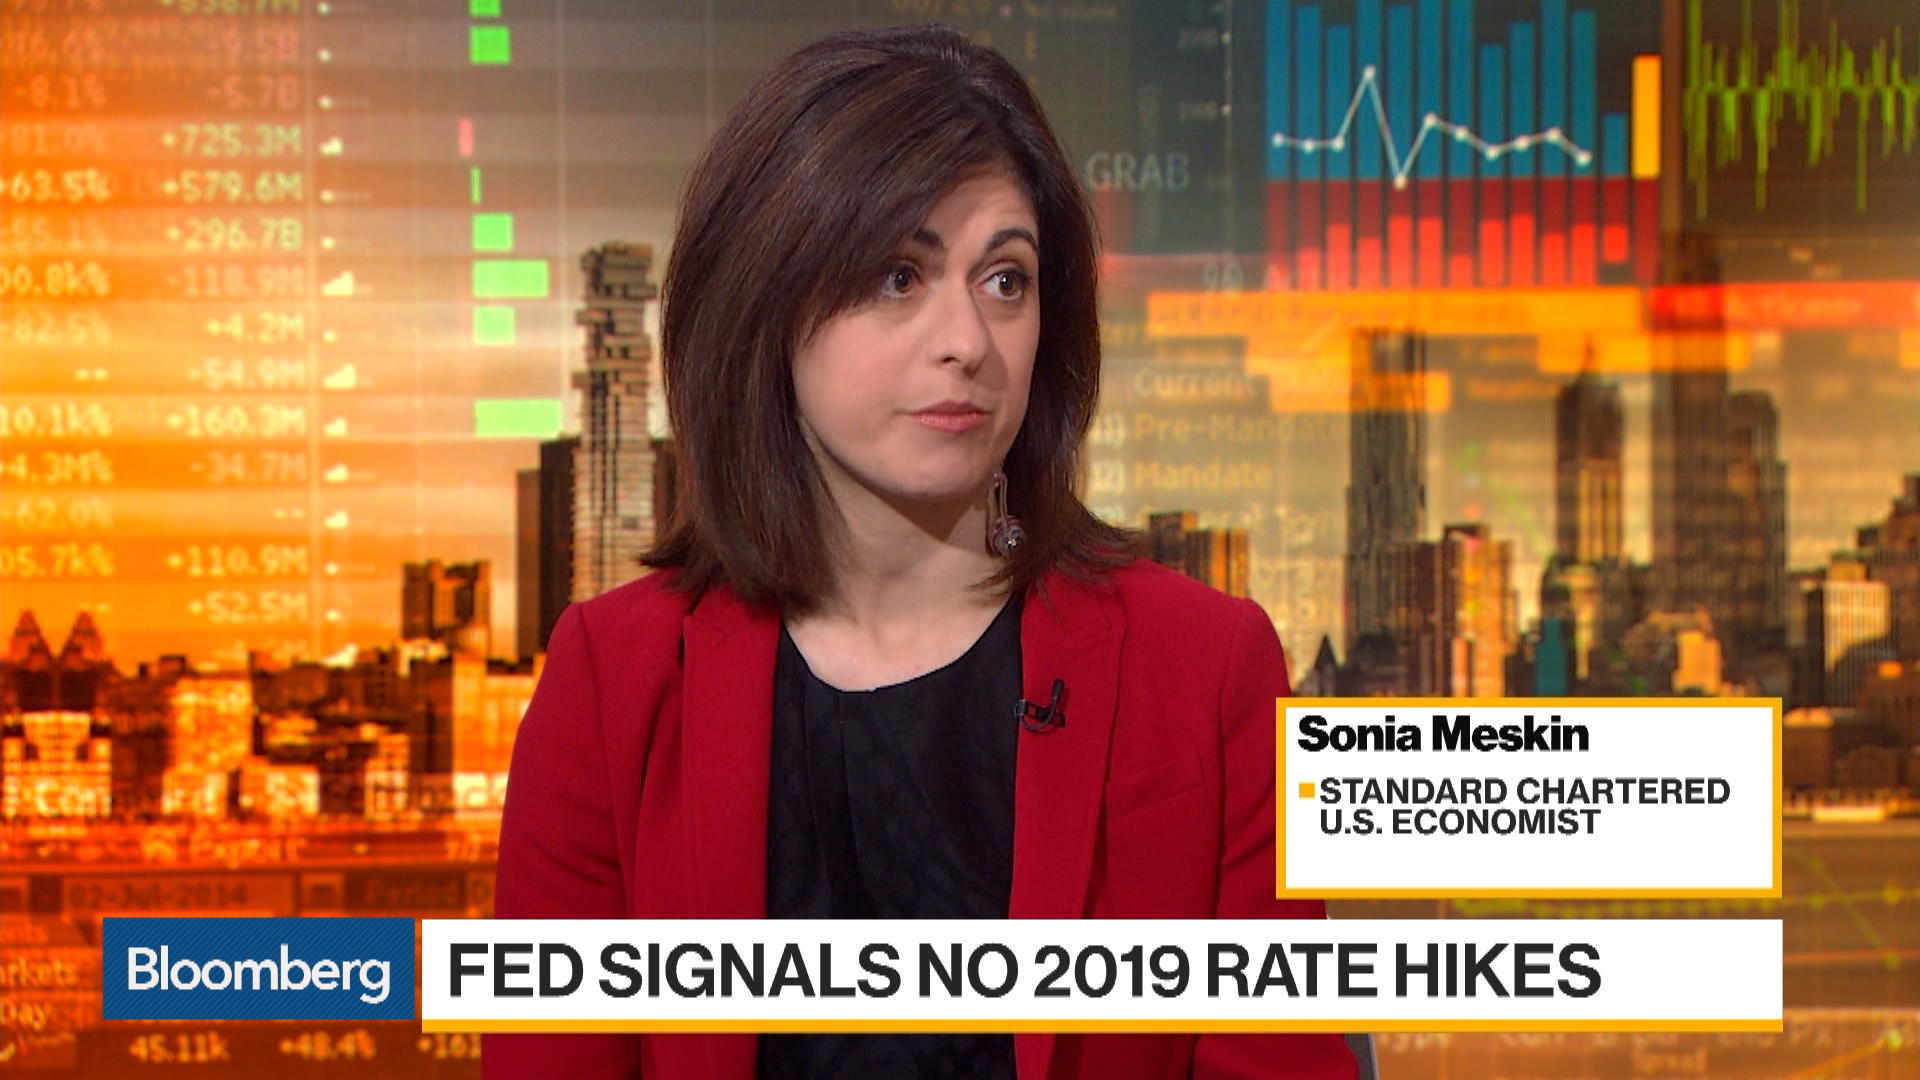 https://www bloomberg com/news/videos/2019-03-15